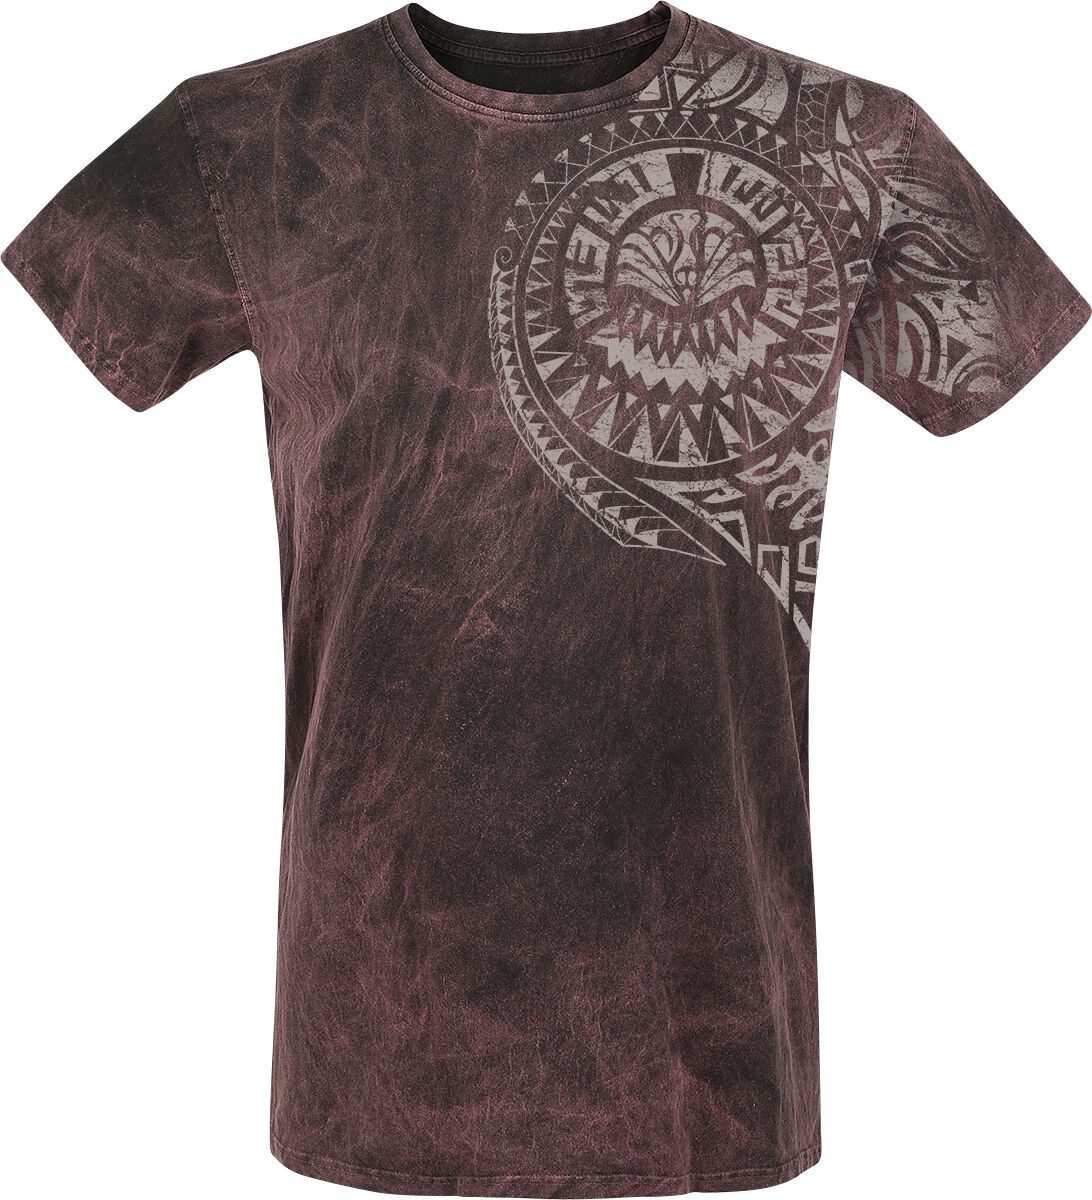 Image of   Outer Vision Burned Magic T-Shirt bordeaux